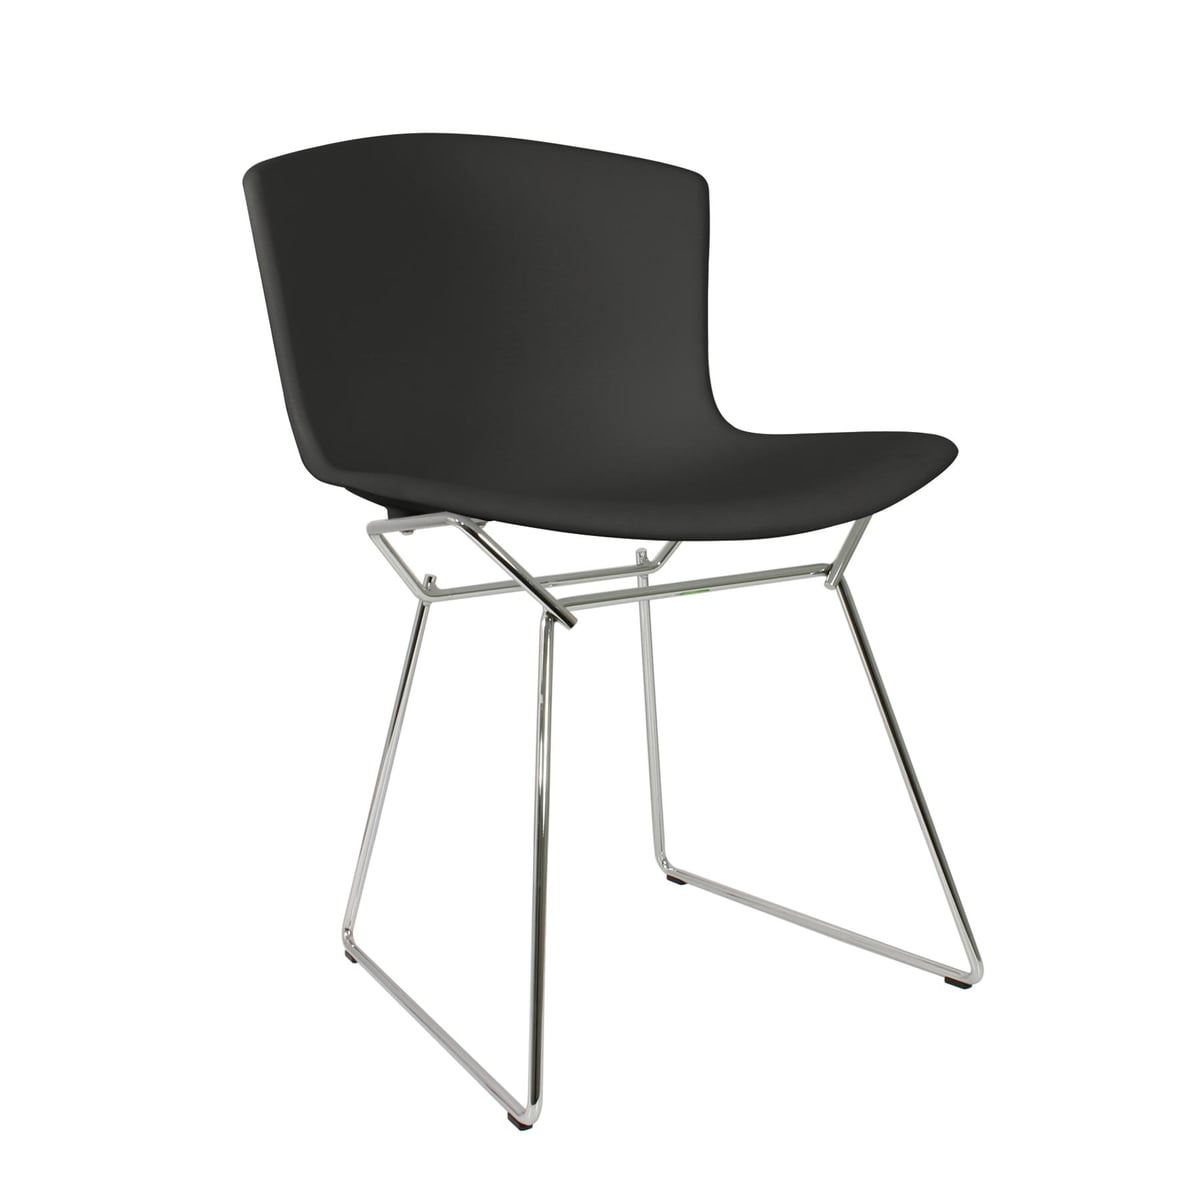 Bertoia plastic chair by knoll in the shop for Bertoia stoel